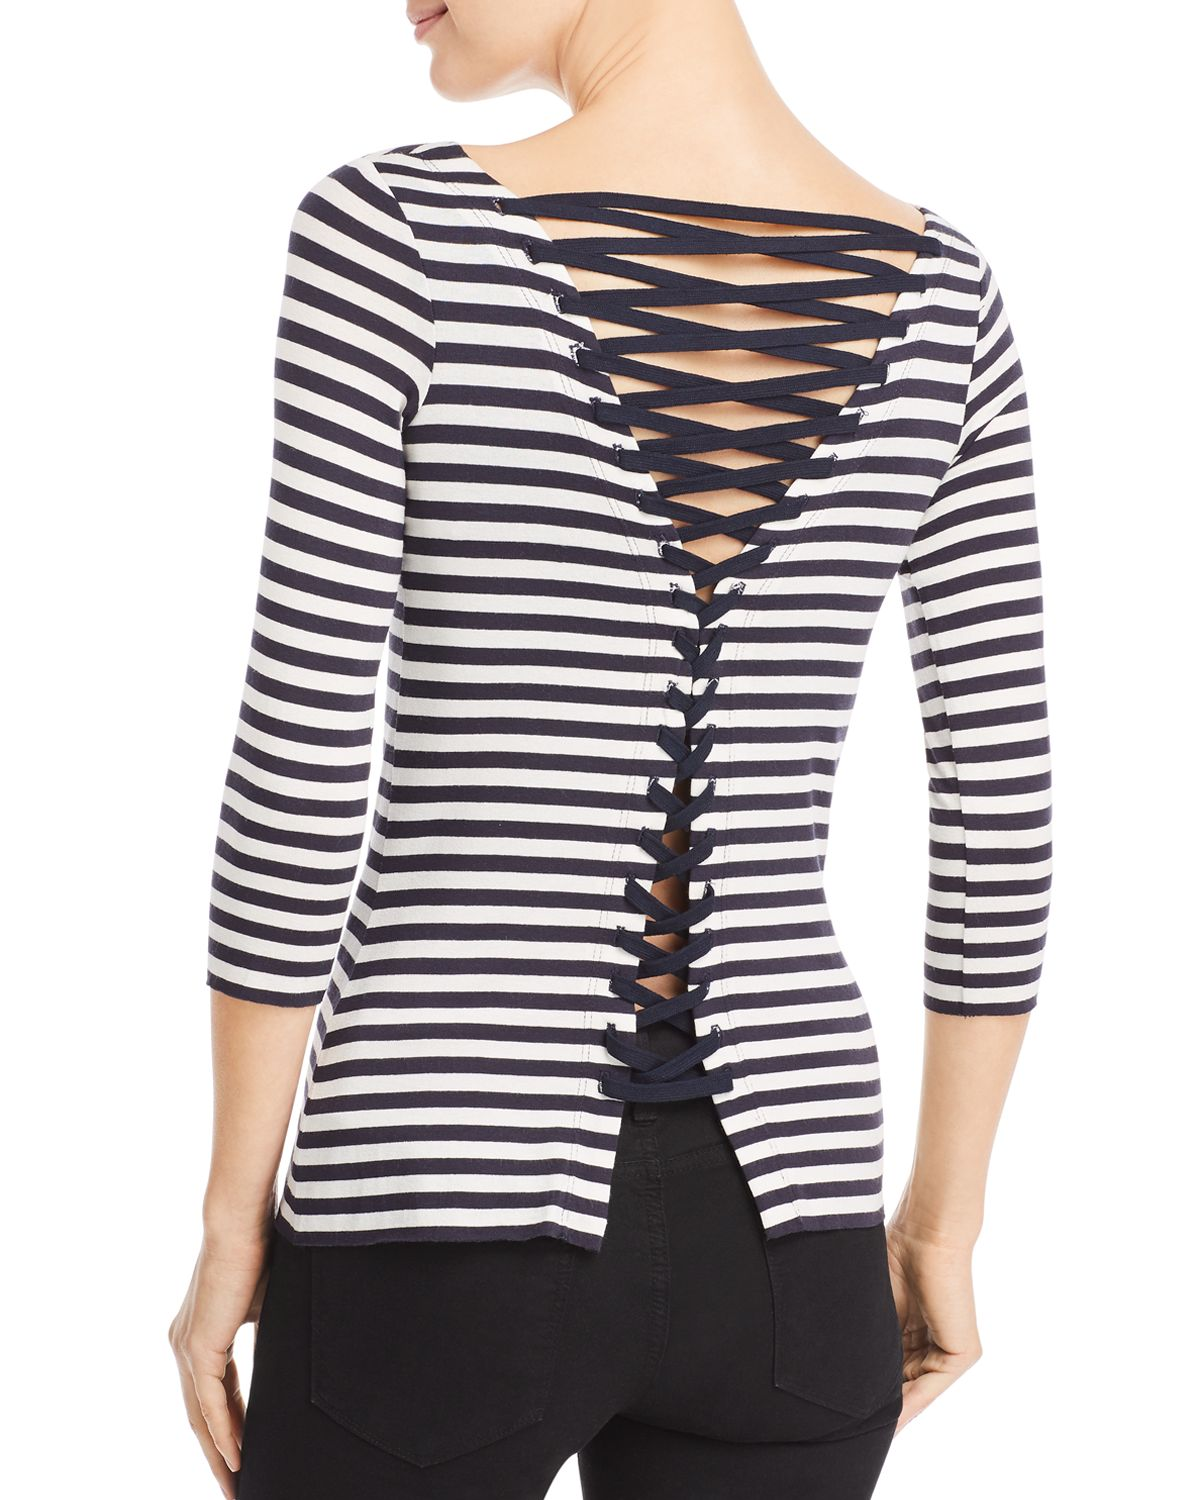 Succulent Lace Up Striped Top by Bailey 44